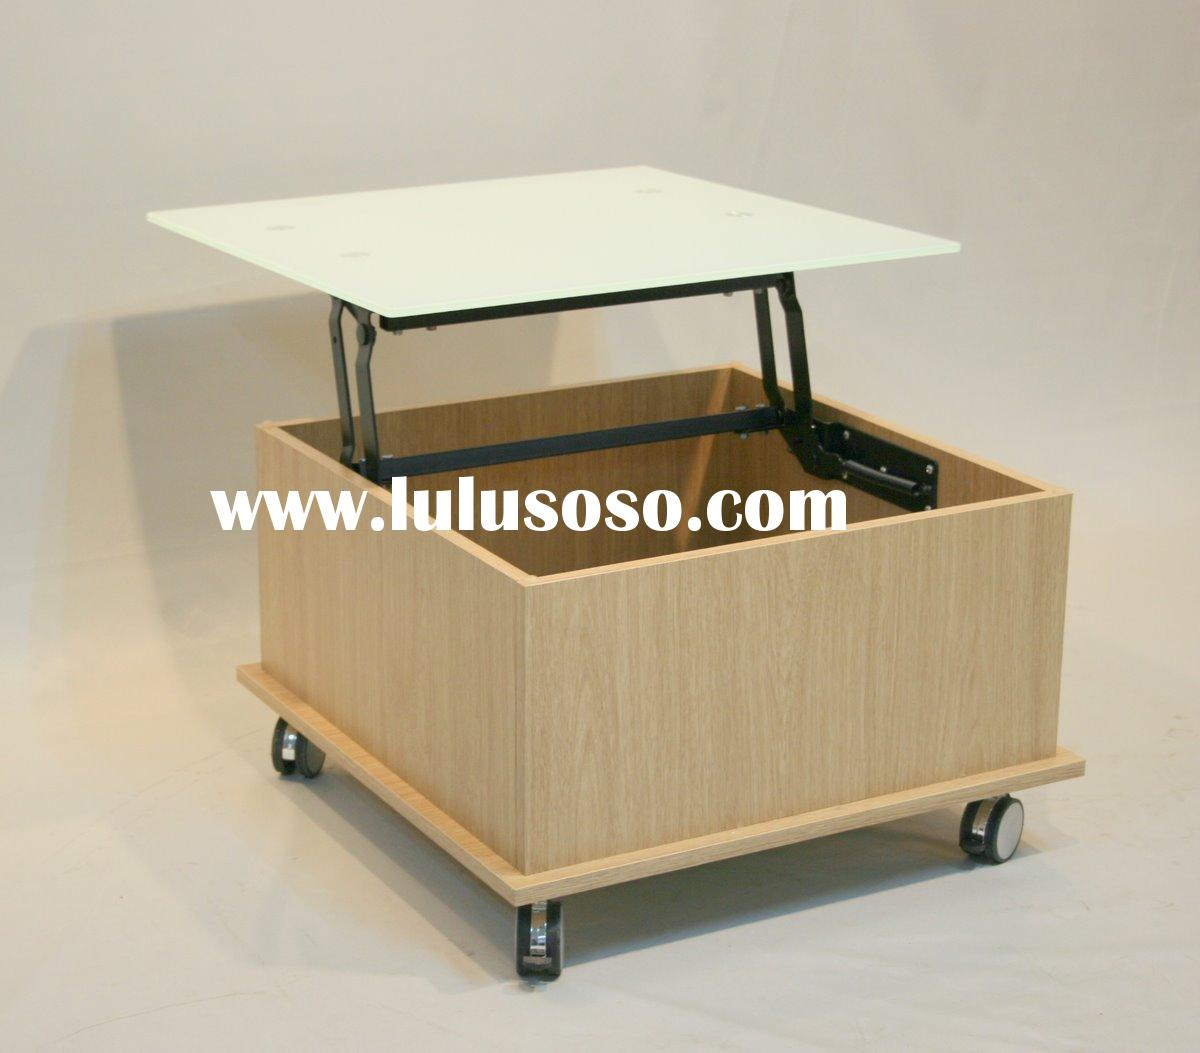 Top movable square coffee table